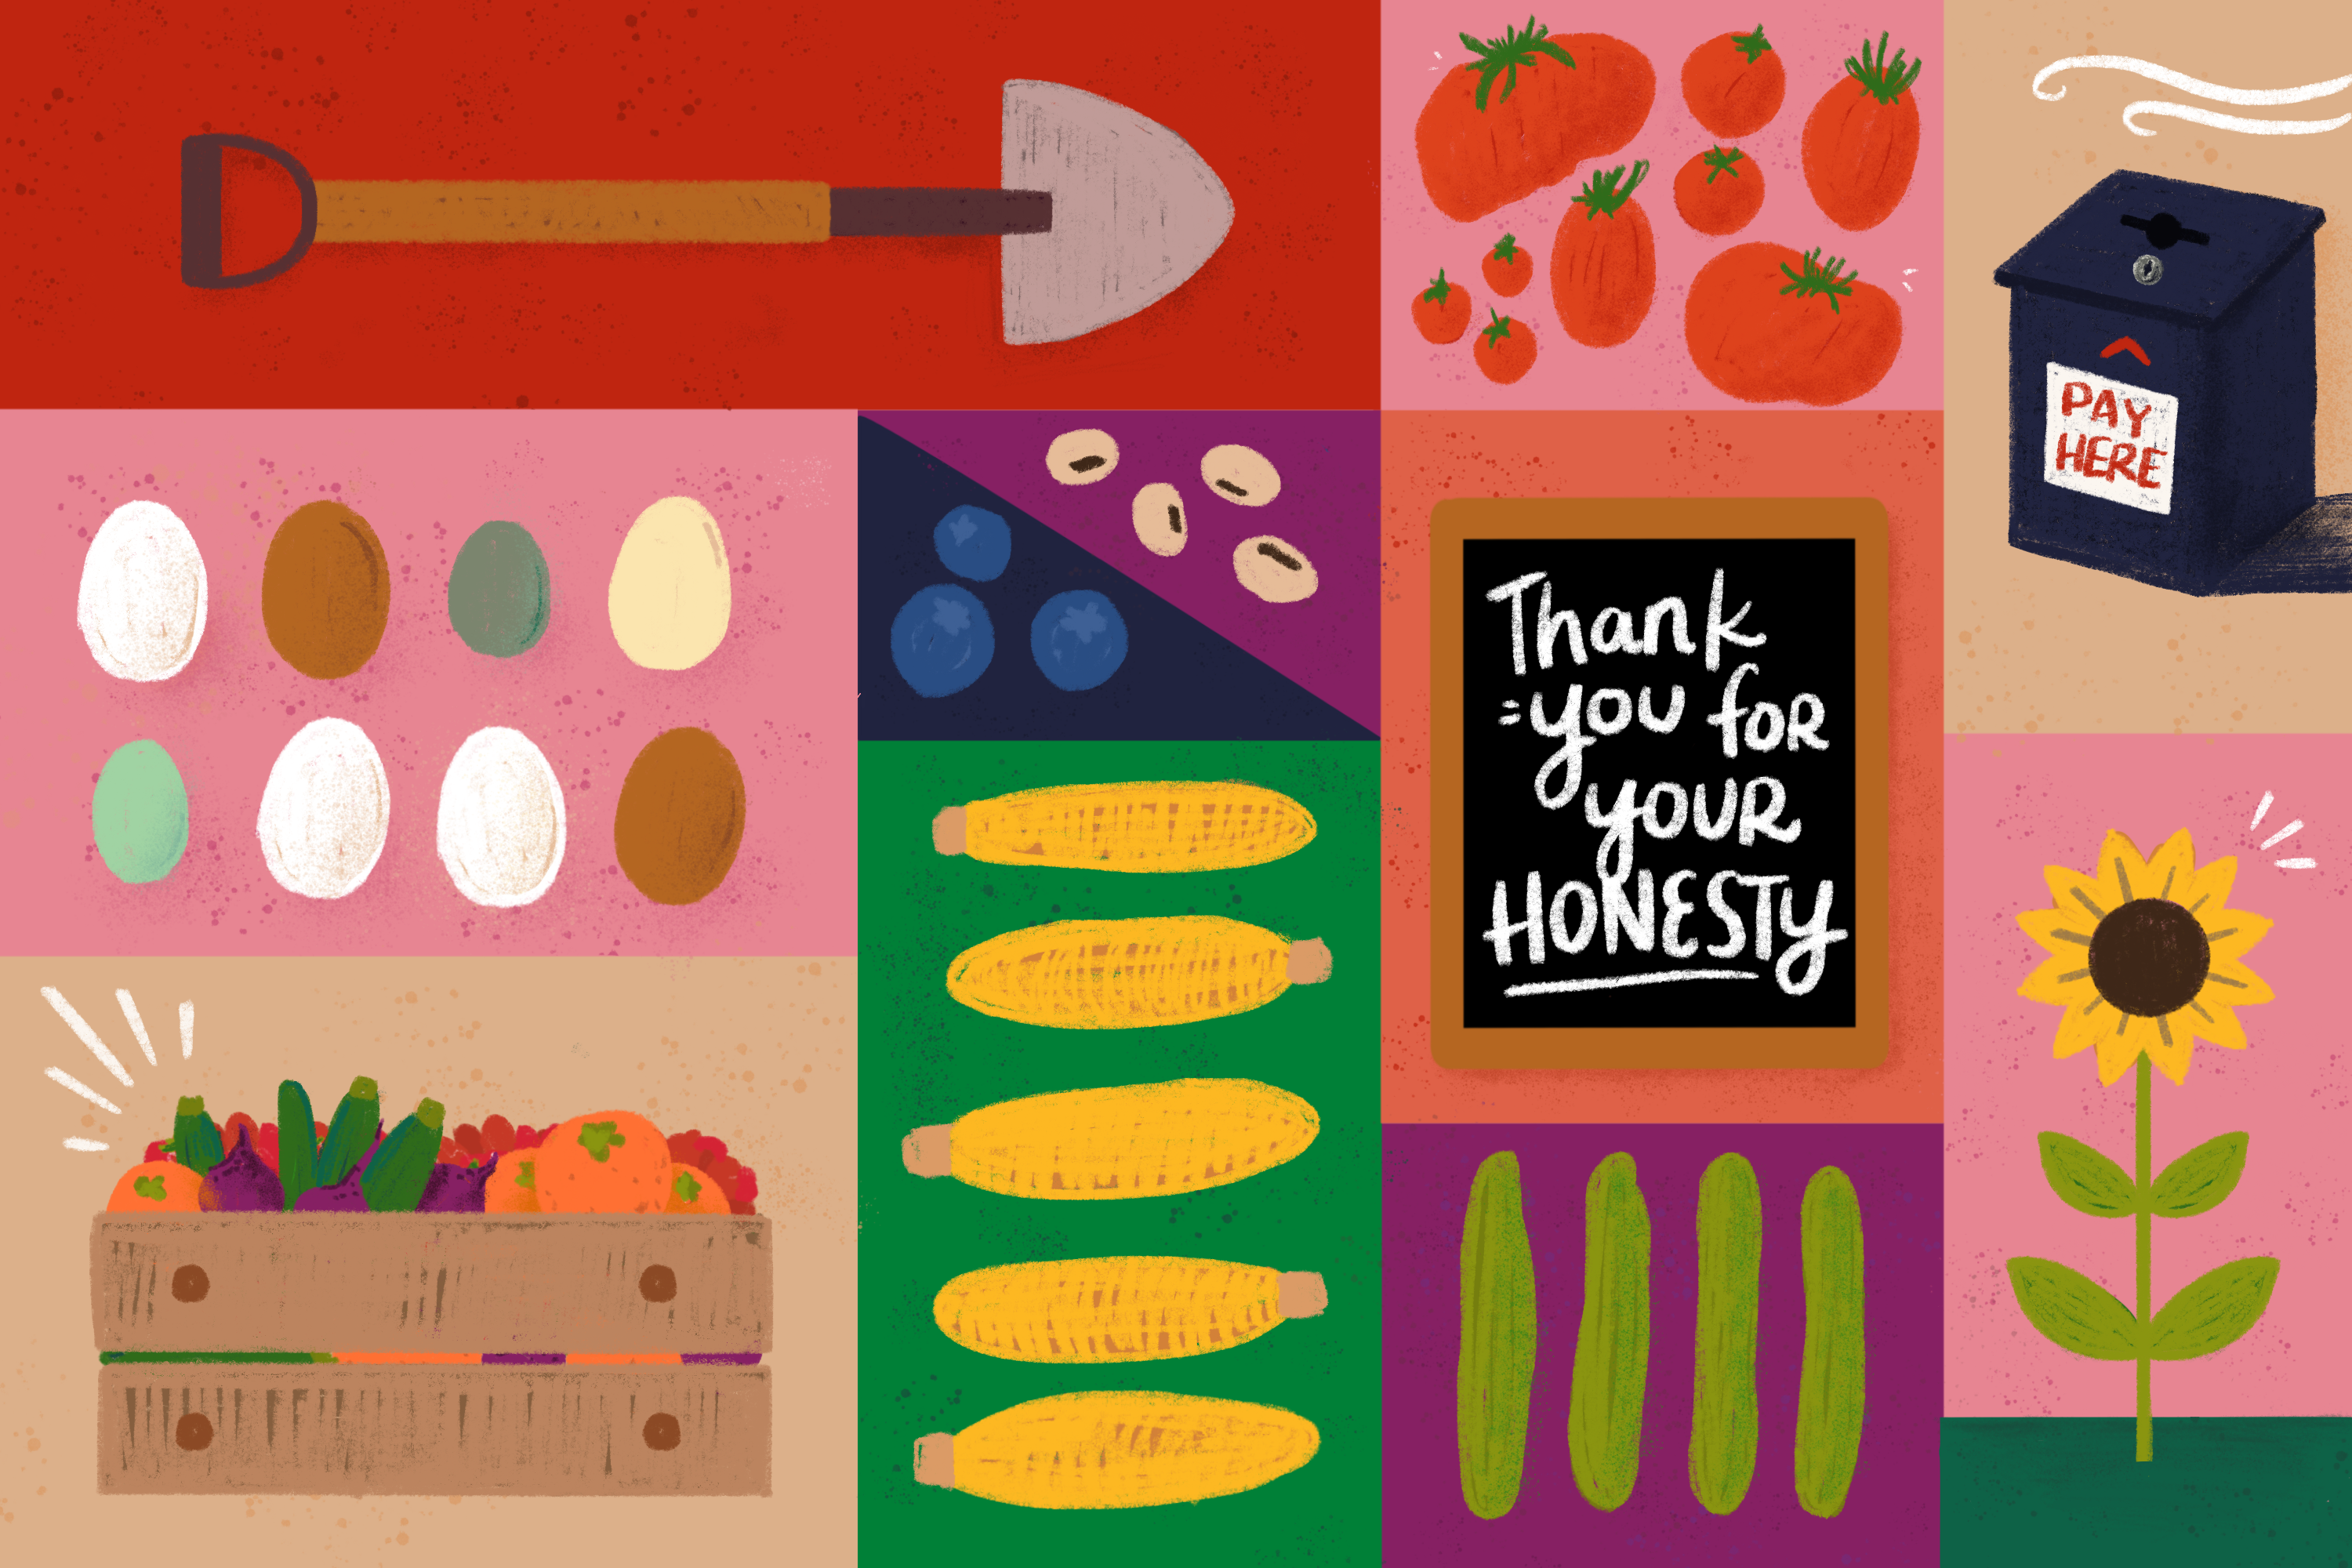 """An illustration of brightly colored panels showing a shovel, tomatoes, multi-colored eggs, ears of corn, cucumbers, a sunflower, a crate full of produce, blueberries, beans, a cash box that says """"Pay Here,"""" and a chalkboard sign that says """"Thank you for your honesty."""""""